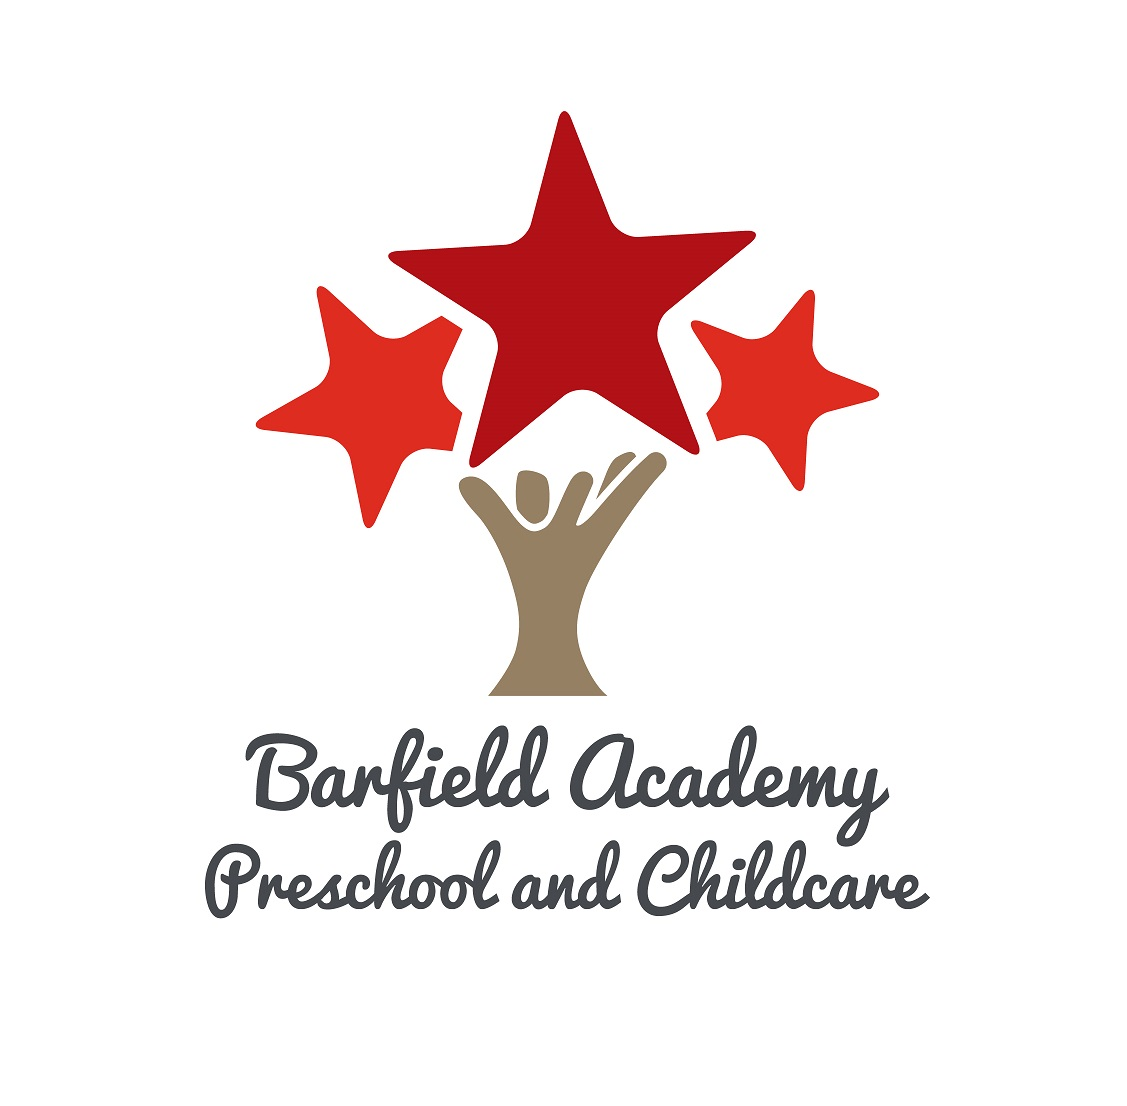 BARFIELD ACADEMY INC.